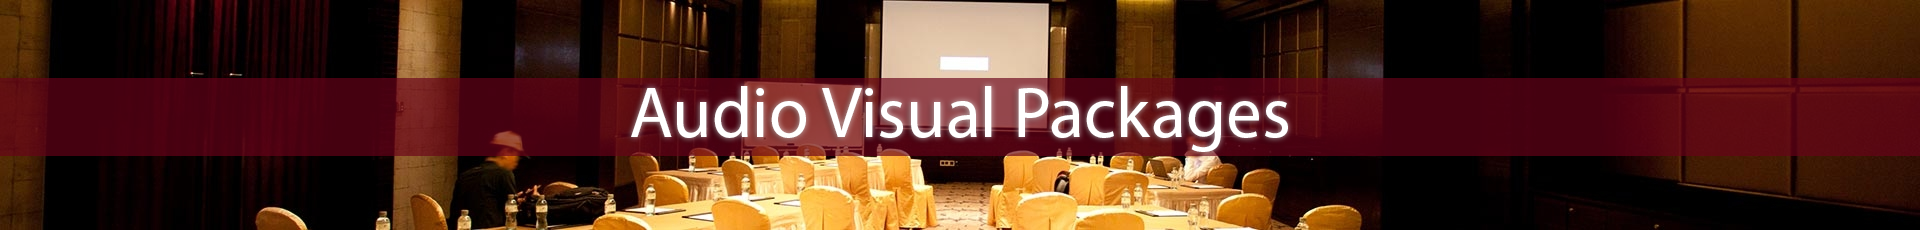 Audio Visual Packages